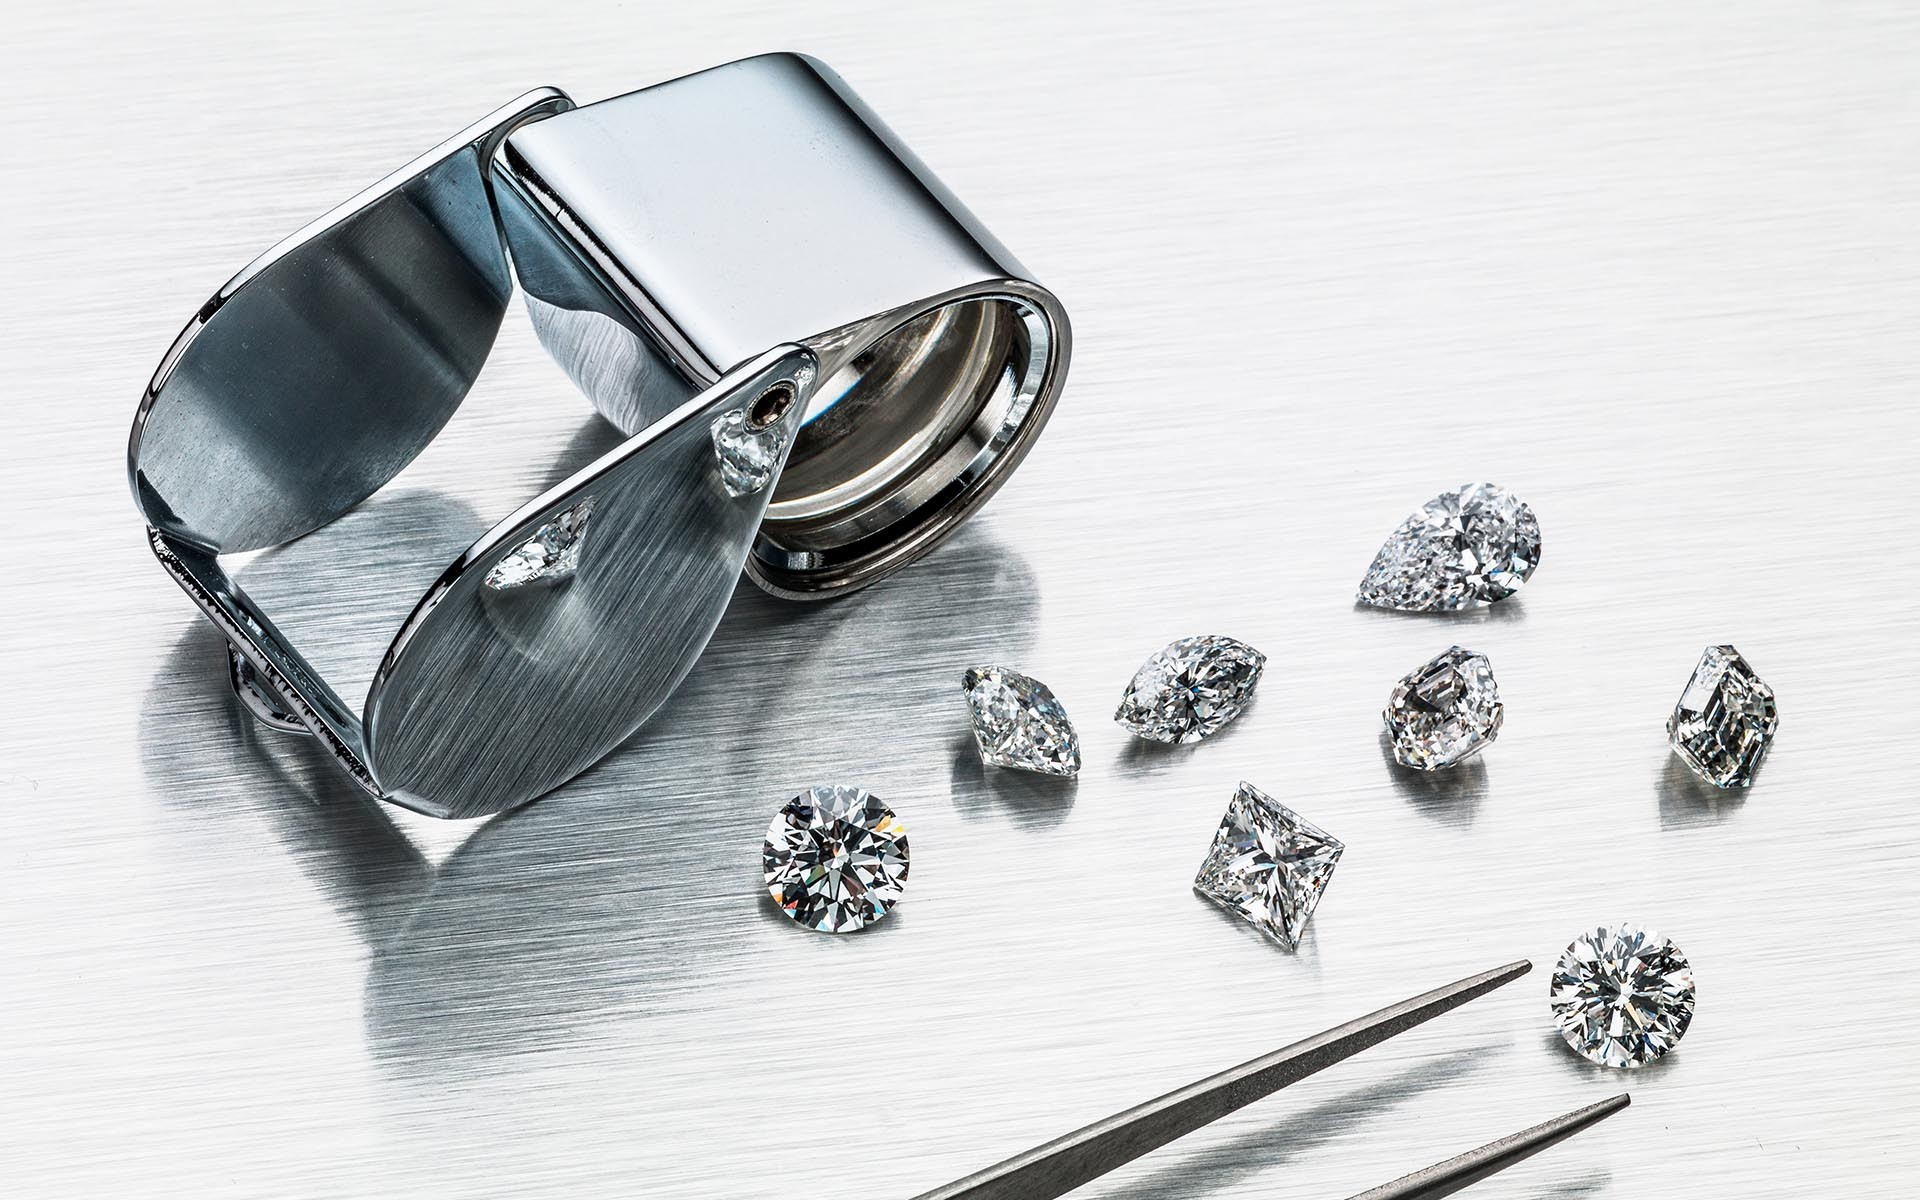 dda group in sees polished belgium diamond rise trade